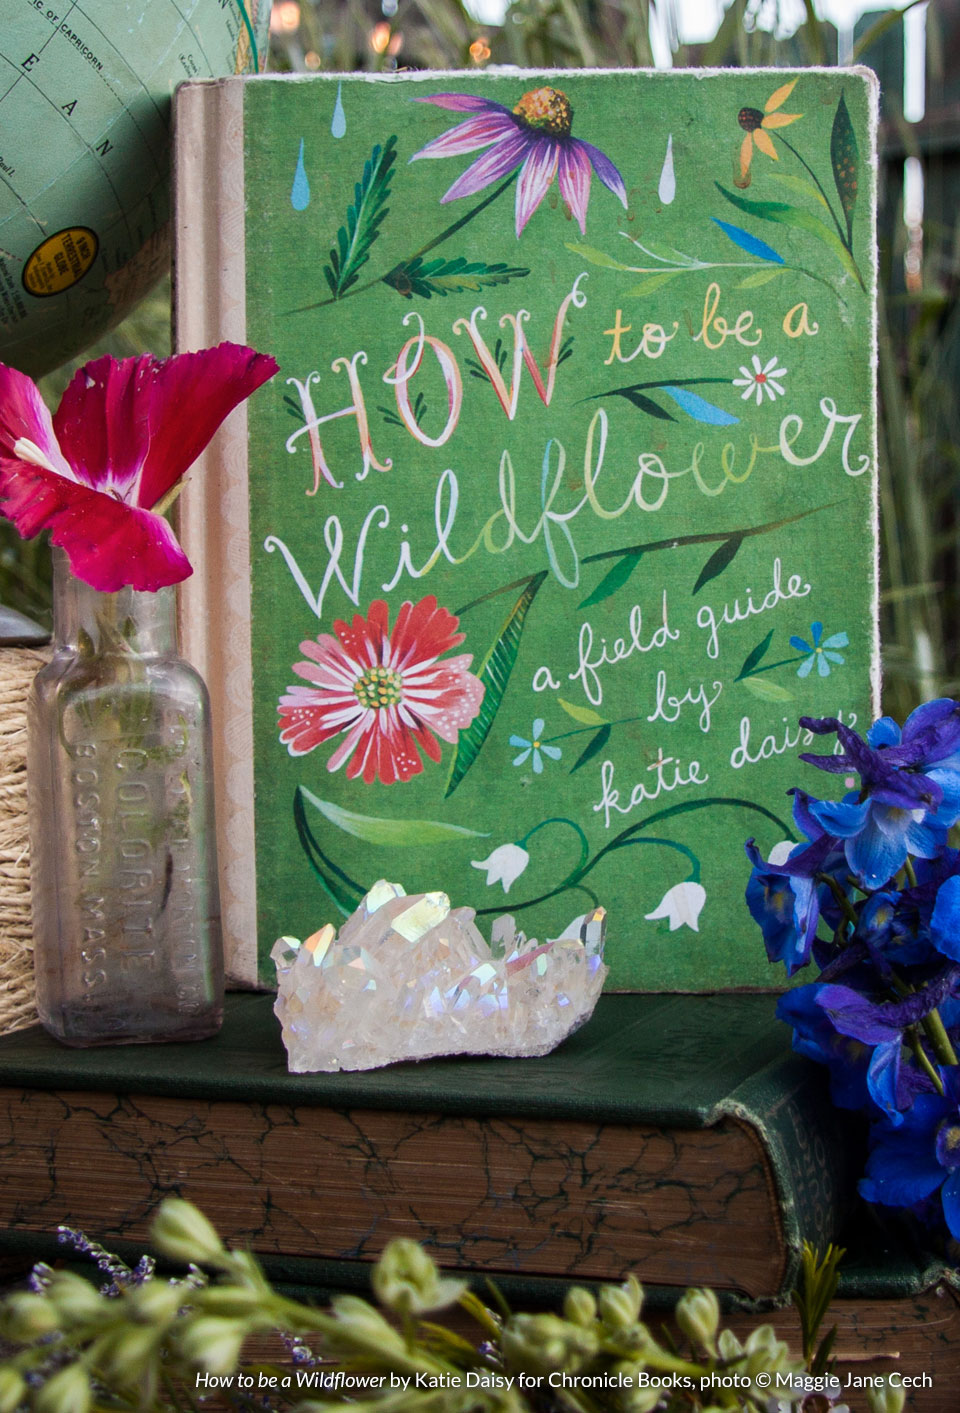 How to be a Wildflower by  Katie Daisy  | Katie was my very first client and continues to be my art brand muse. I've helped her behind-the-scenes on many exciting projects over the years, but a sentimental favorite is her first book, the New York Times Bestseller How to Be a Wildflower, published by Chronicle. (Photo by Maggie Jane Cech)